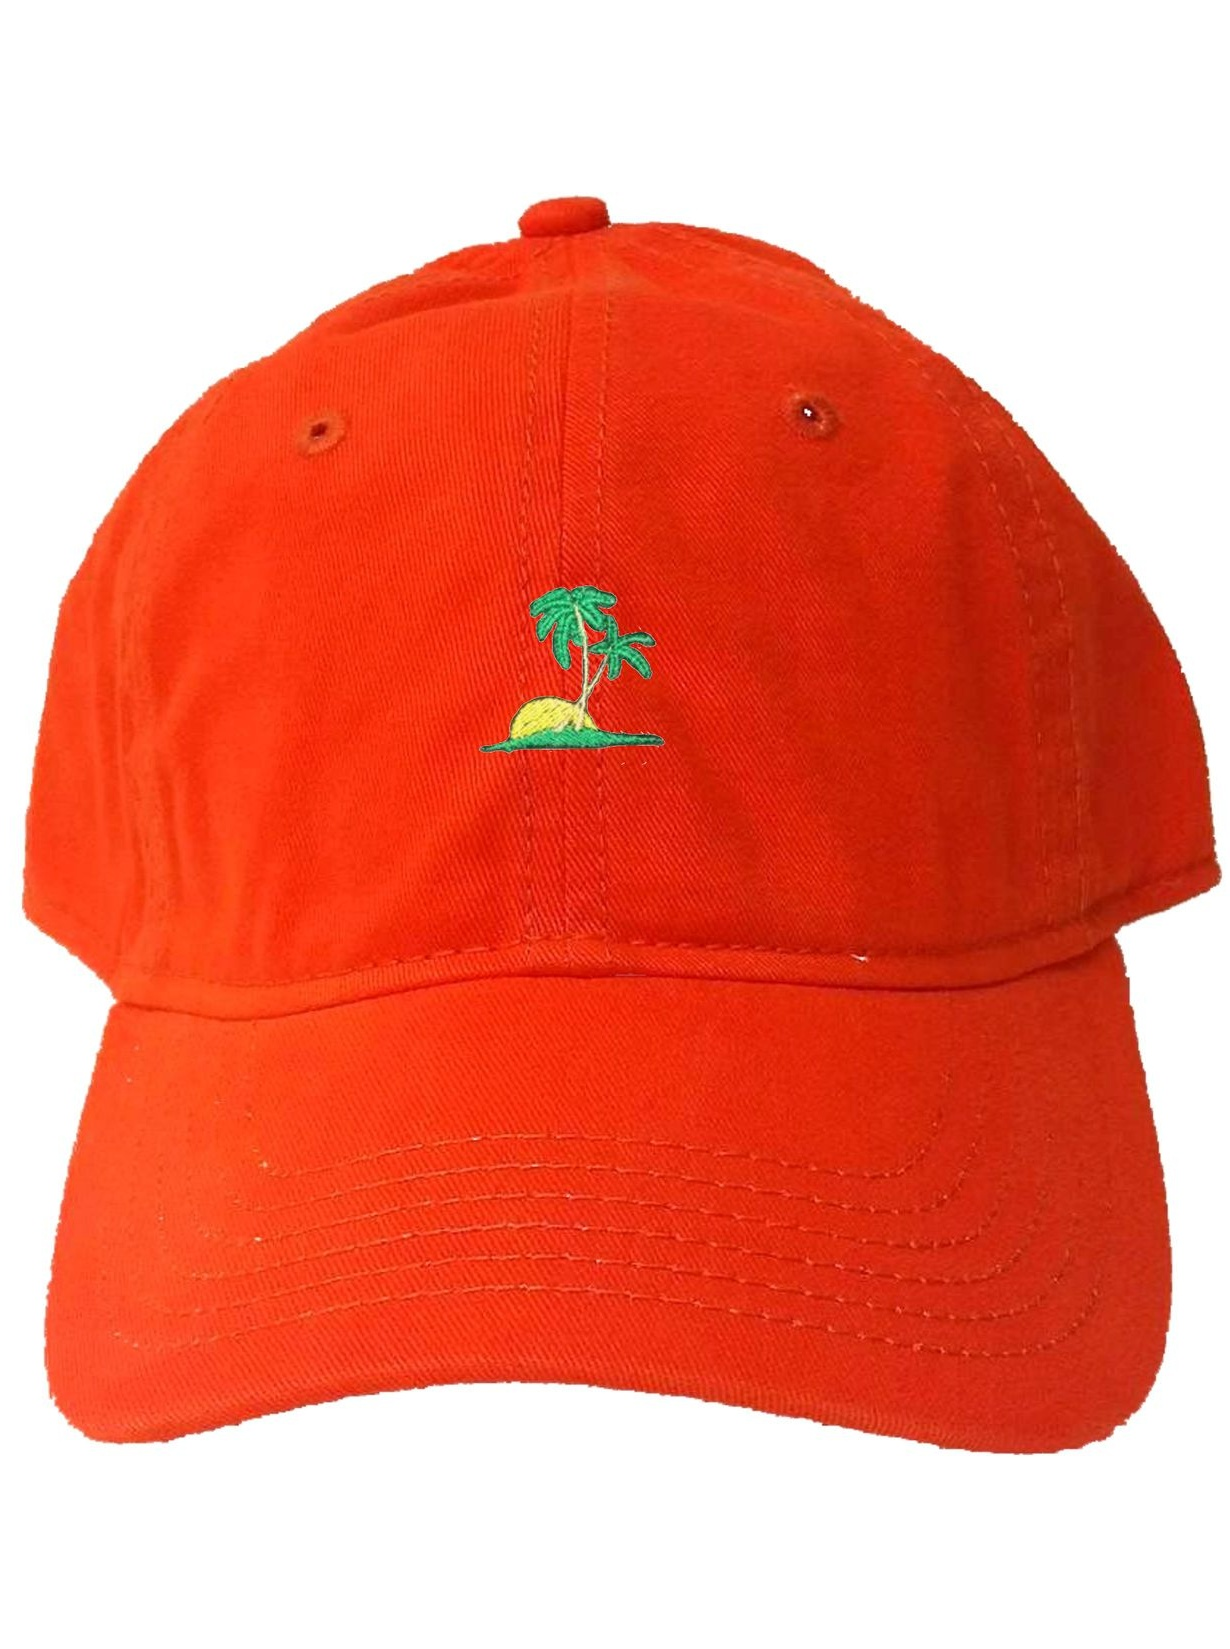 Go All Out Adult Palm Tree Embroidered Visor Dad Hat